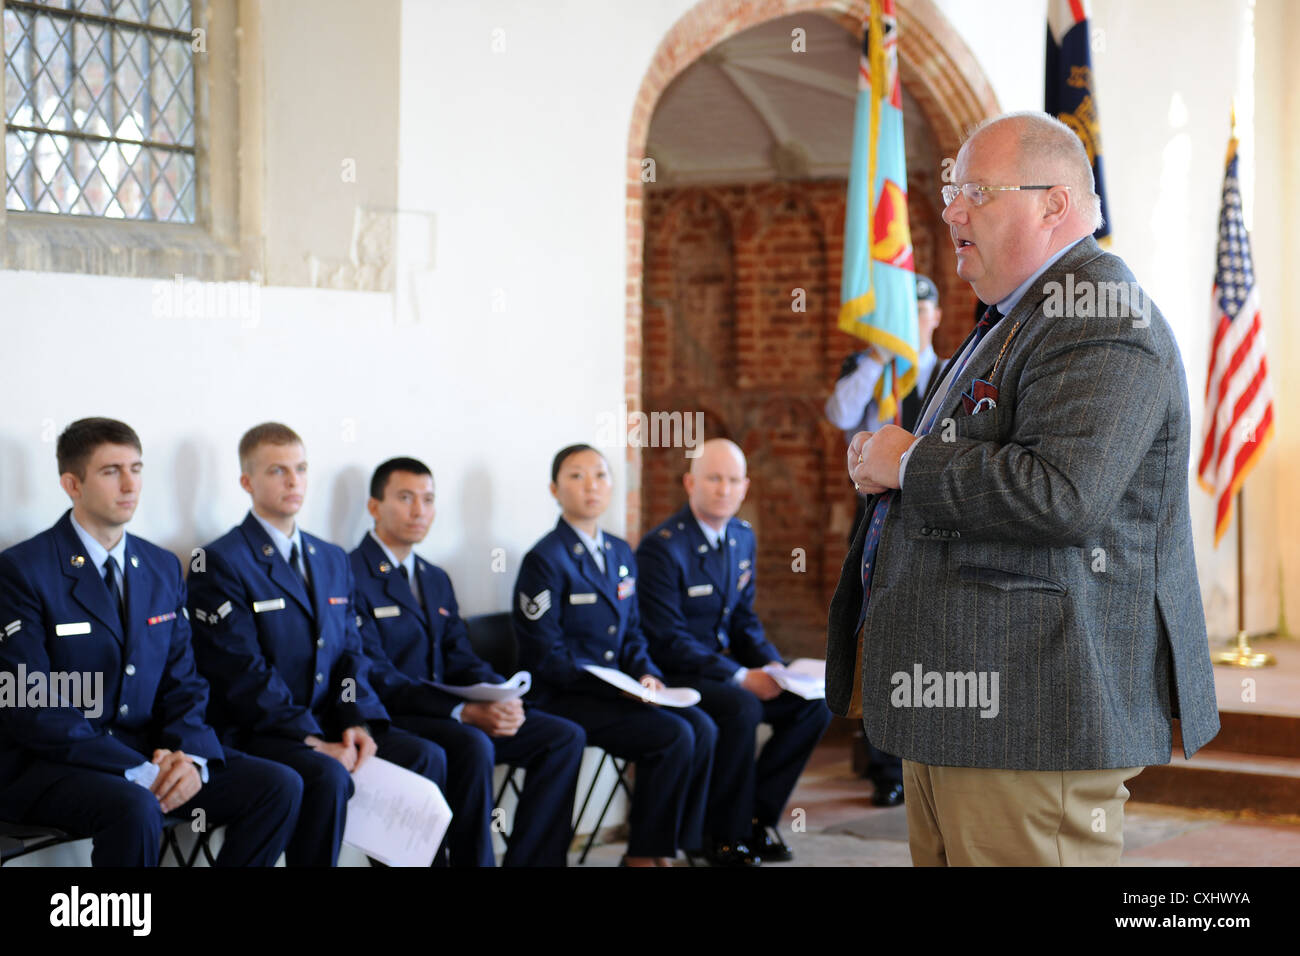 EAST HORNDON, England—Honorable Eric Pickles, Member of Parliament, speaks while Airmen assigned to RAF Mildenhall - Stock Image